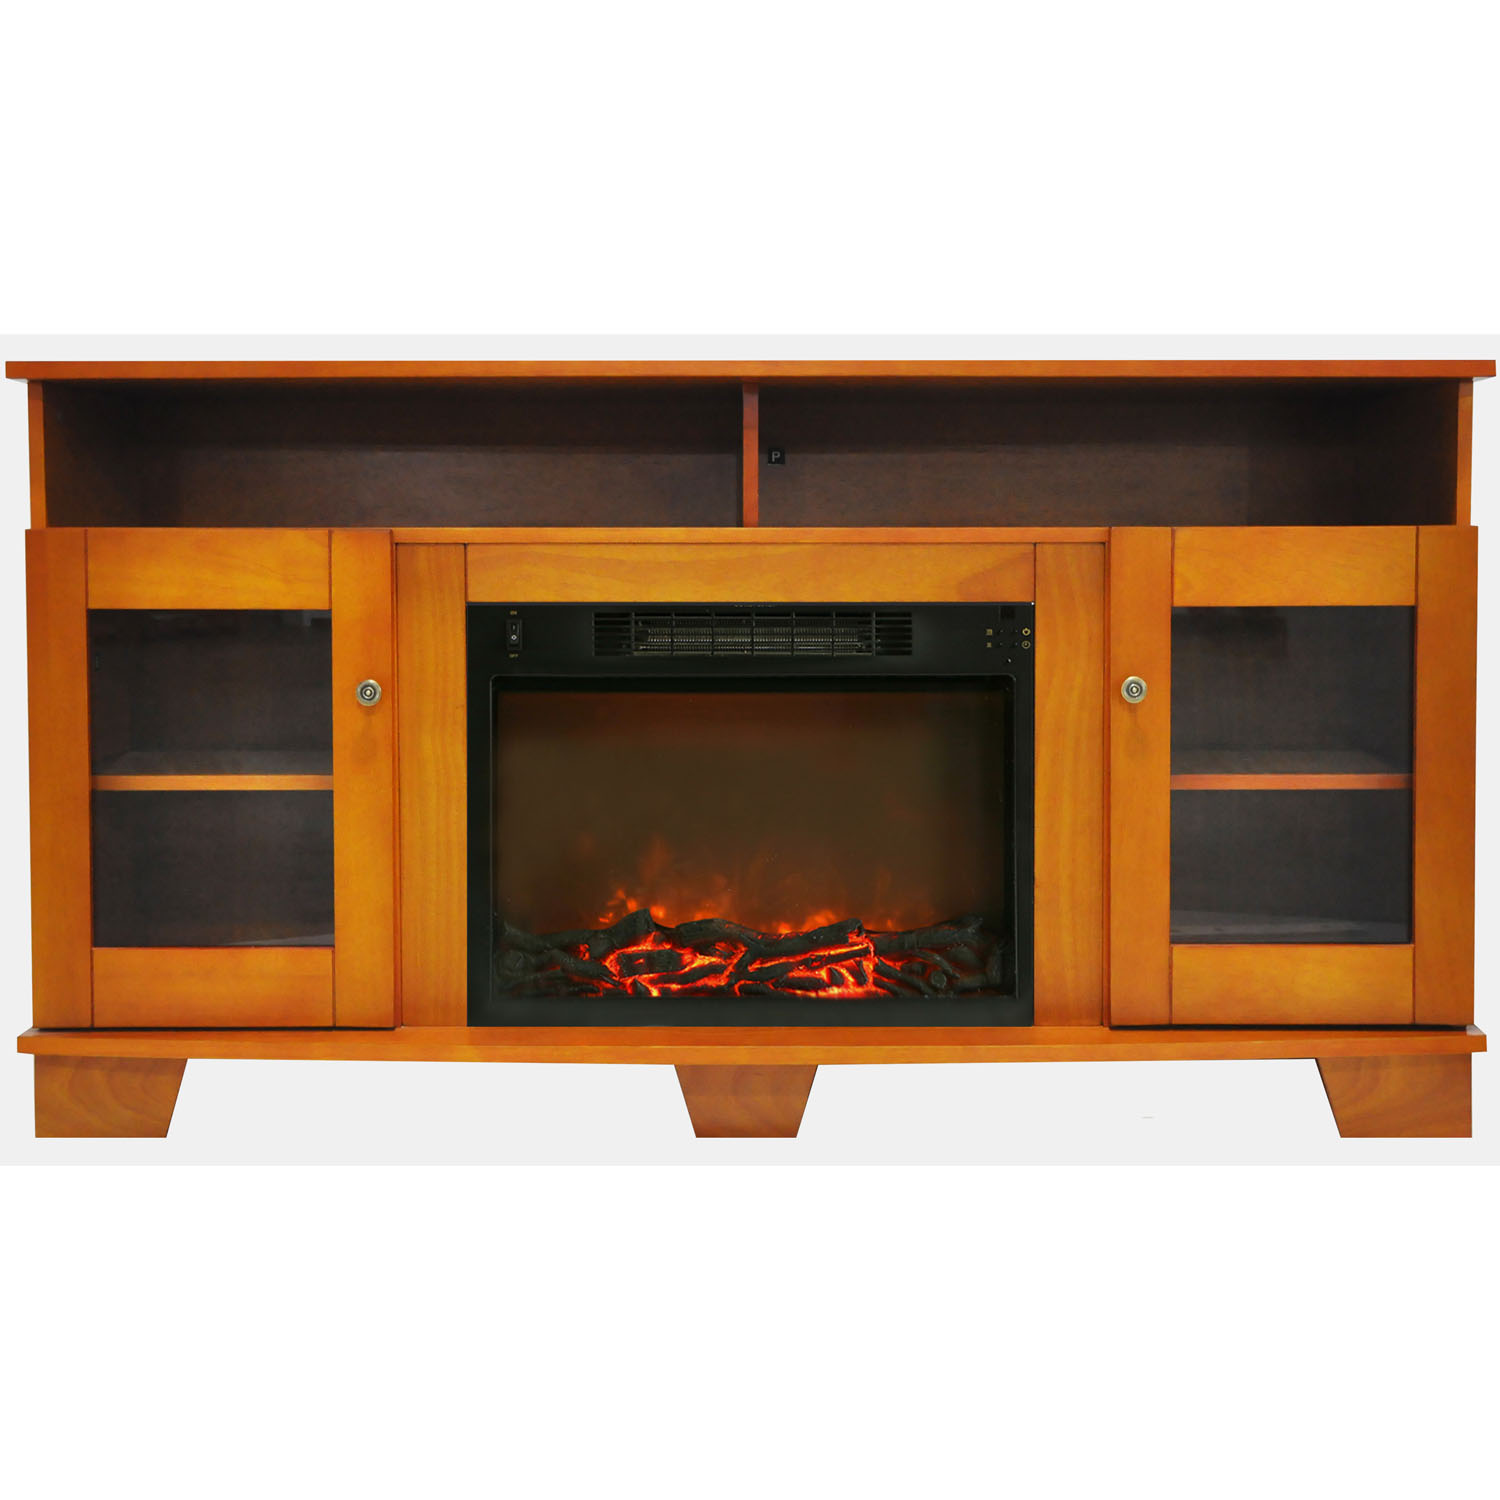 "Cambridge Savona Electric Fireplace Heater with 59"" Entertainment Stand and Charred Log Display"